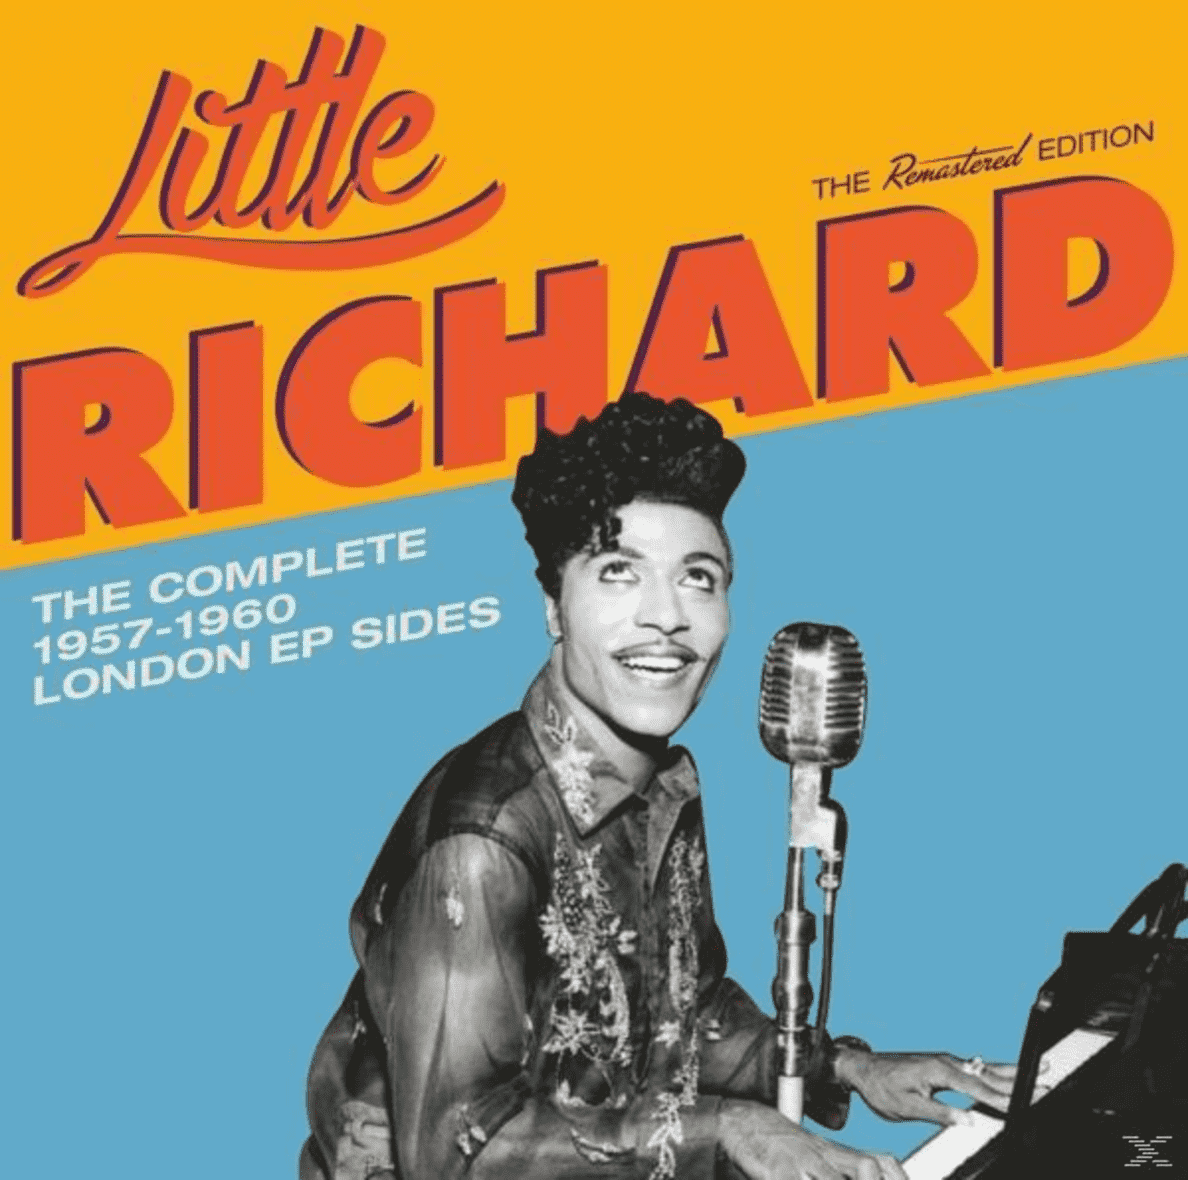 The Complete 1957-1960 London Ep Sides Little Richard auf CD